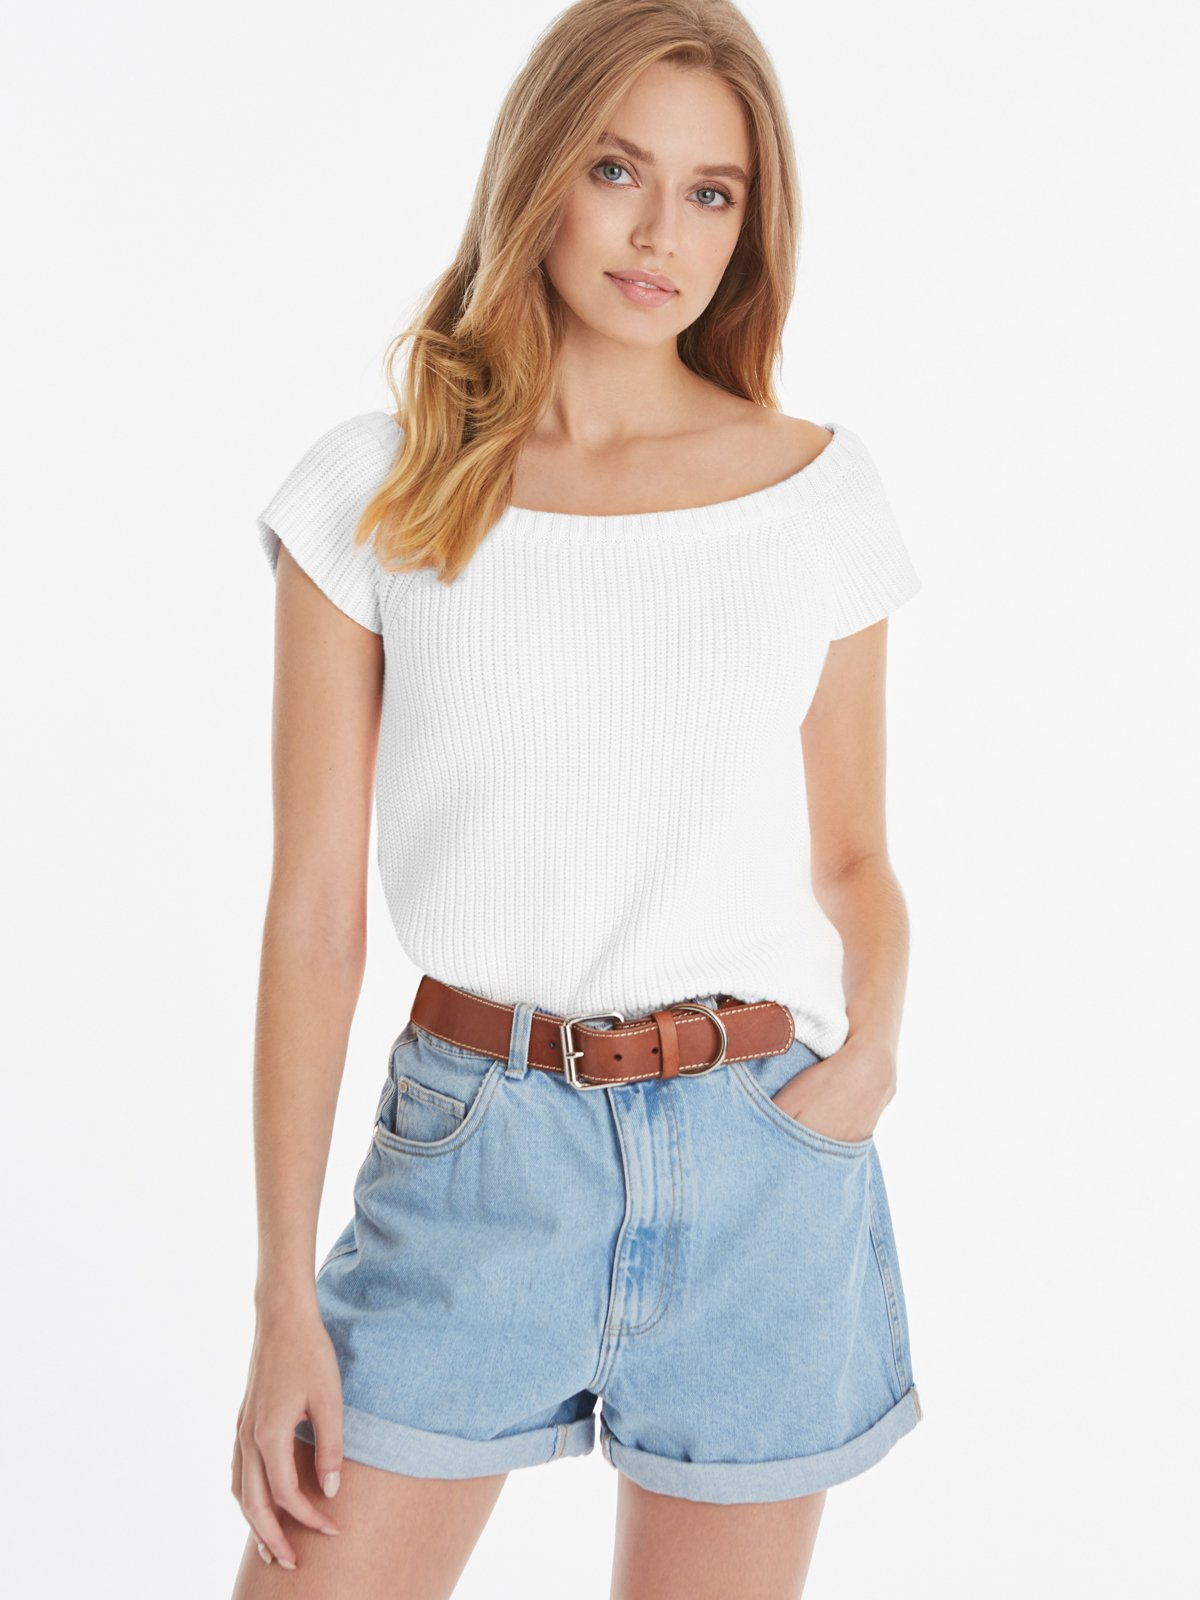 Juliet Cotton Shaker Bateau Top - Bleach White